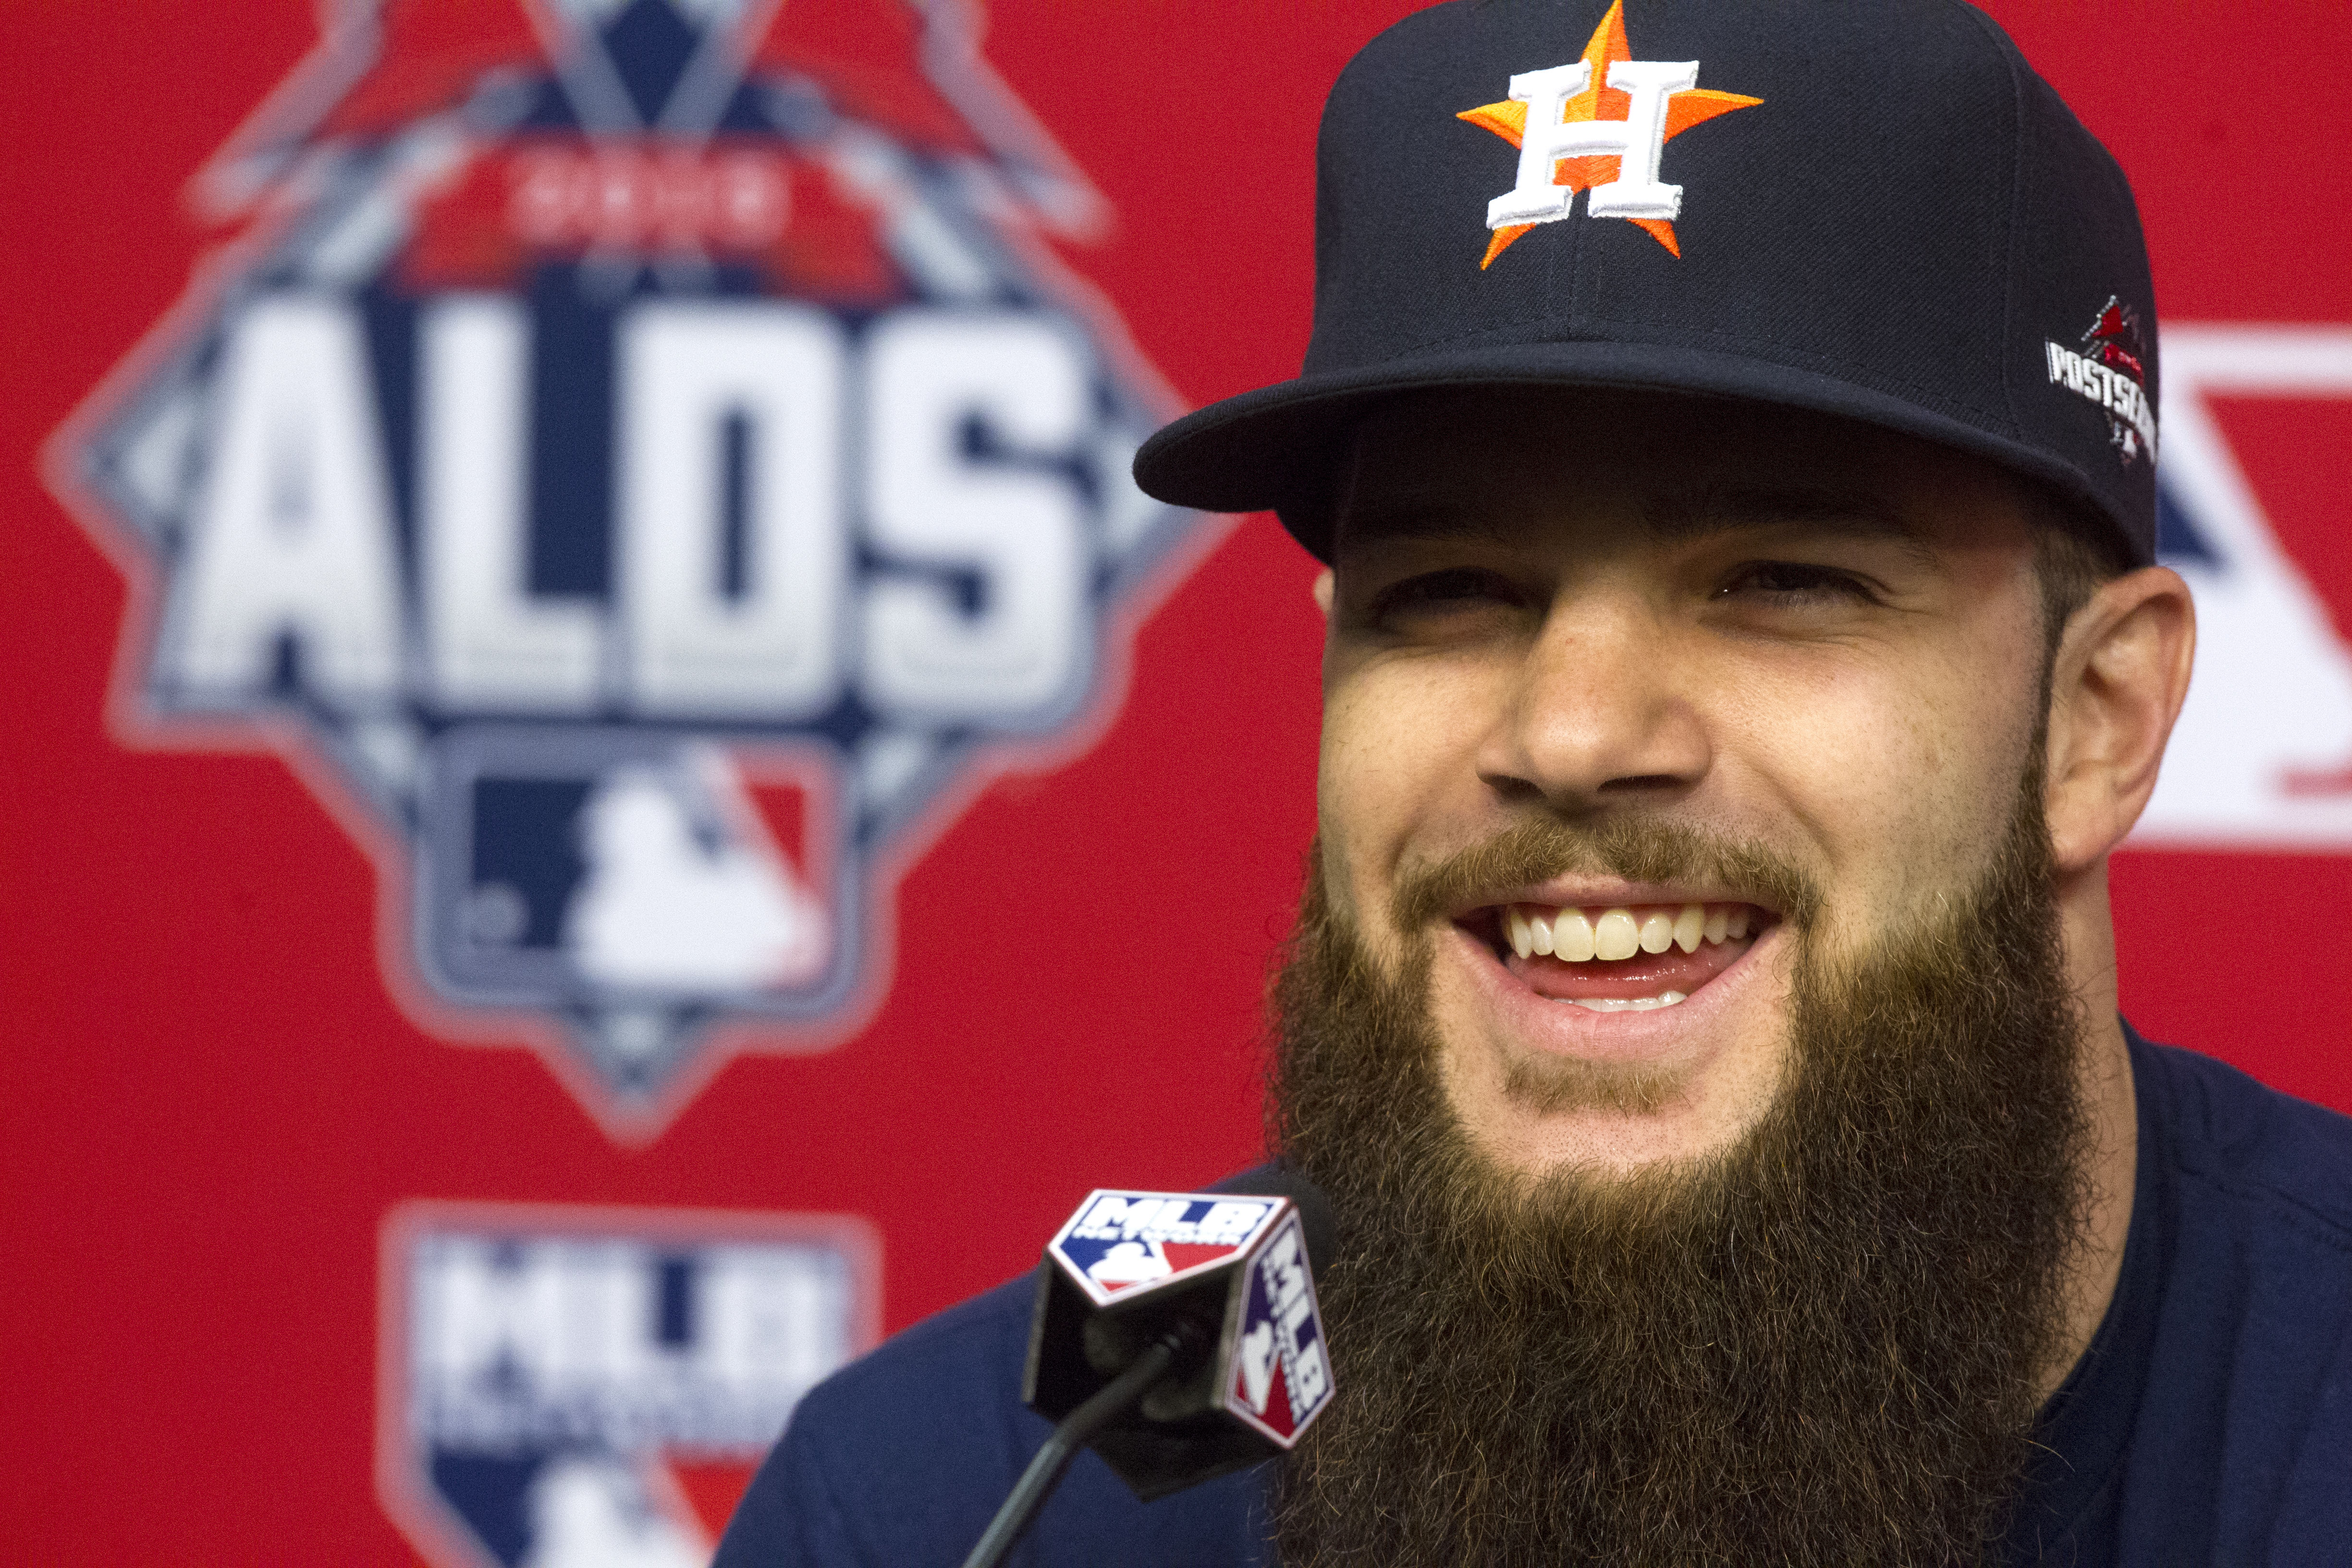 Houston Astros pitcher Dallas Keuchel speaks during a news conference for baseball's American League Division Series, Saturday, Oct. 10, 2015, in Houston. The Astros host the Kansas City Royals in Game 3 on Sunday. The best-of-five games series is tied 1-